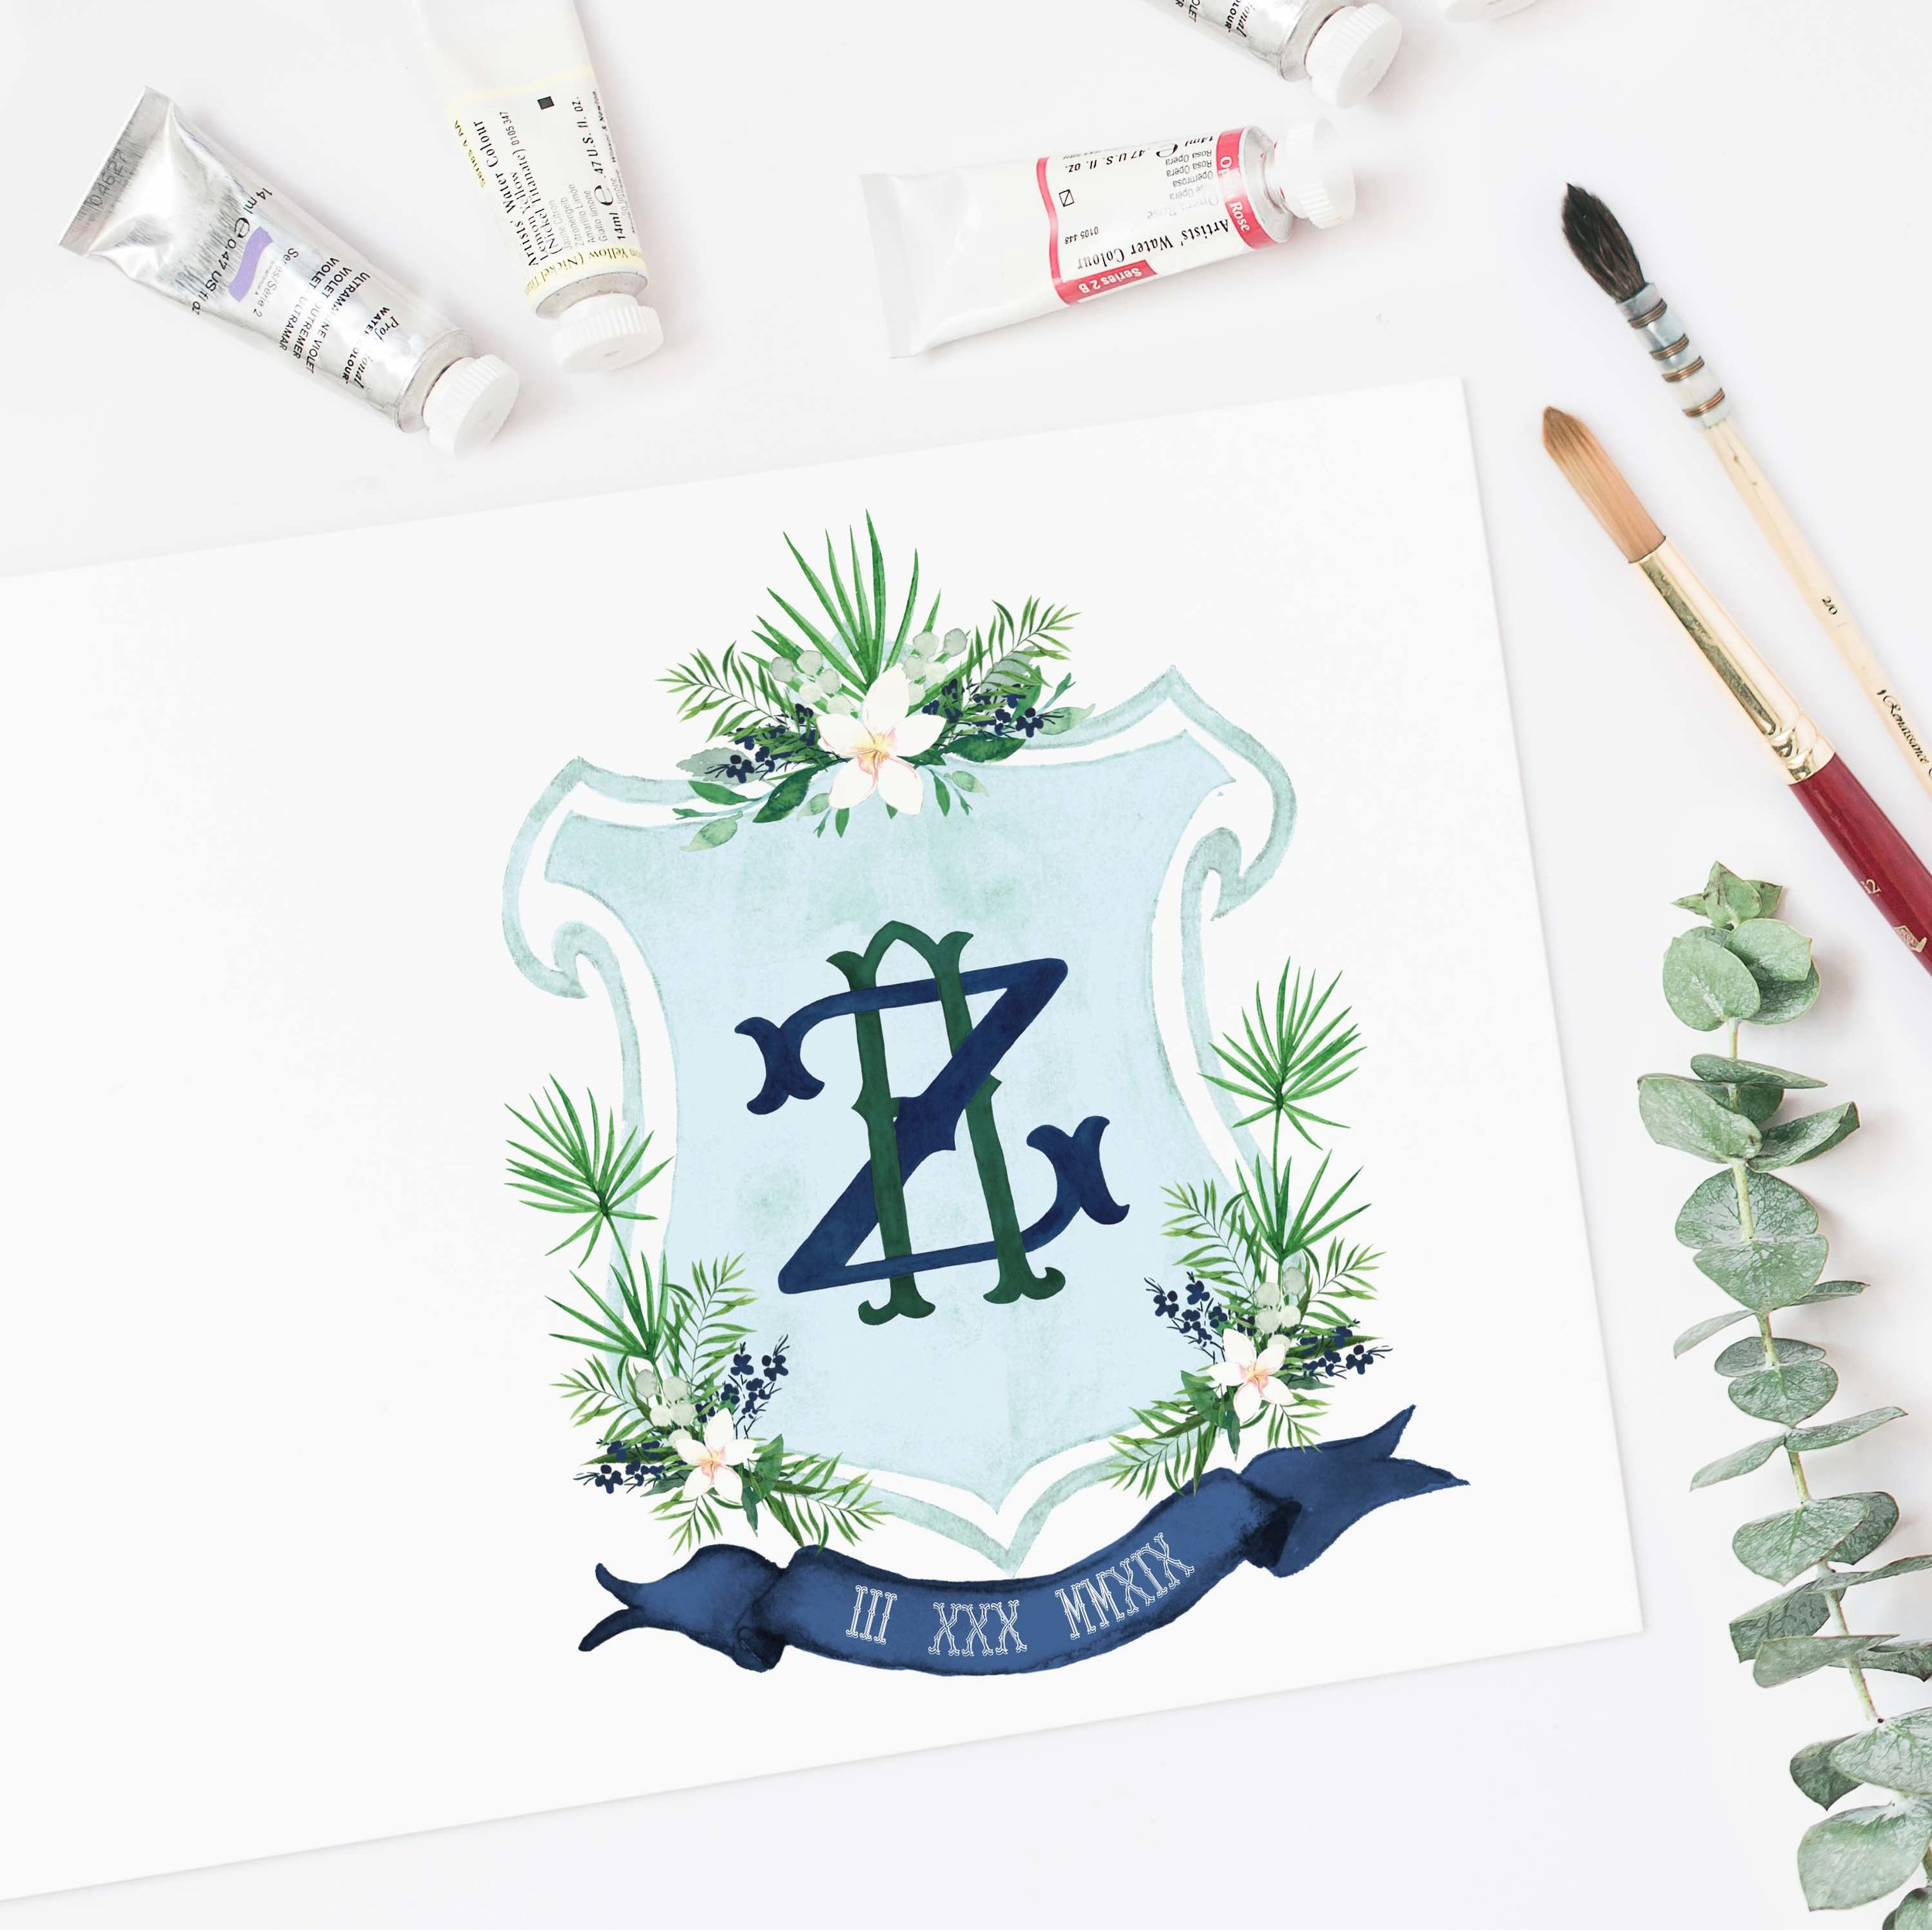 Tropical Wedding Crest Watercolor with Palm Leaves and Navy.jpg